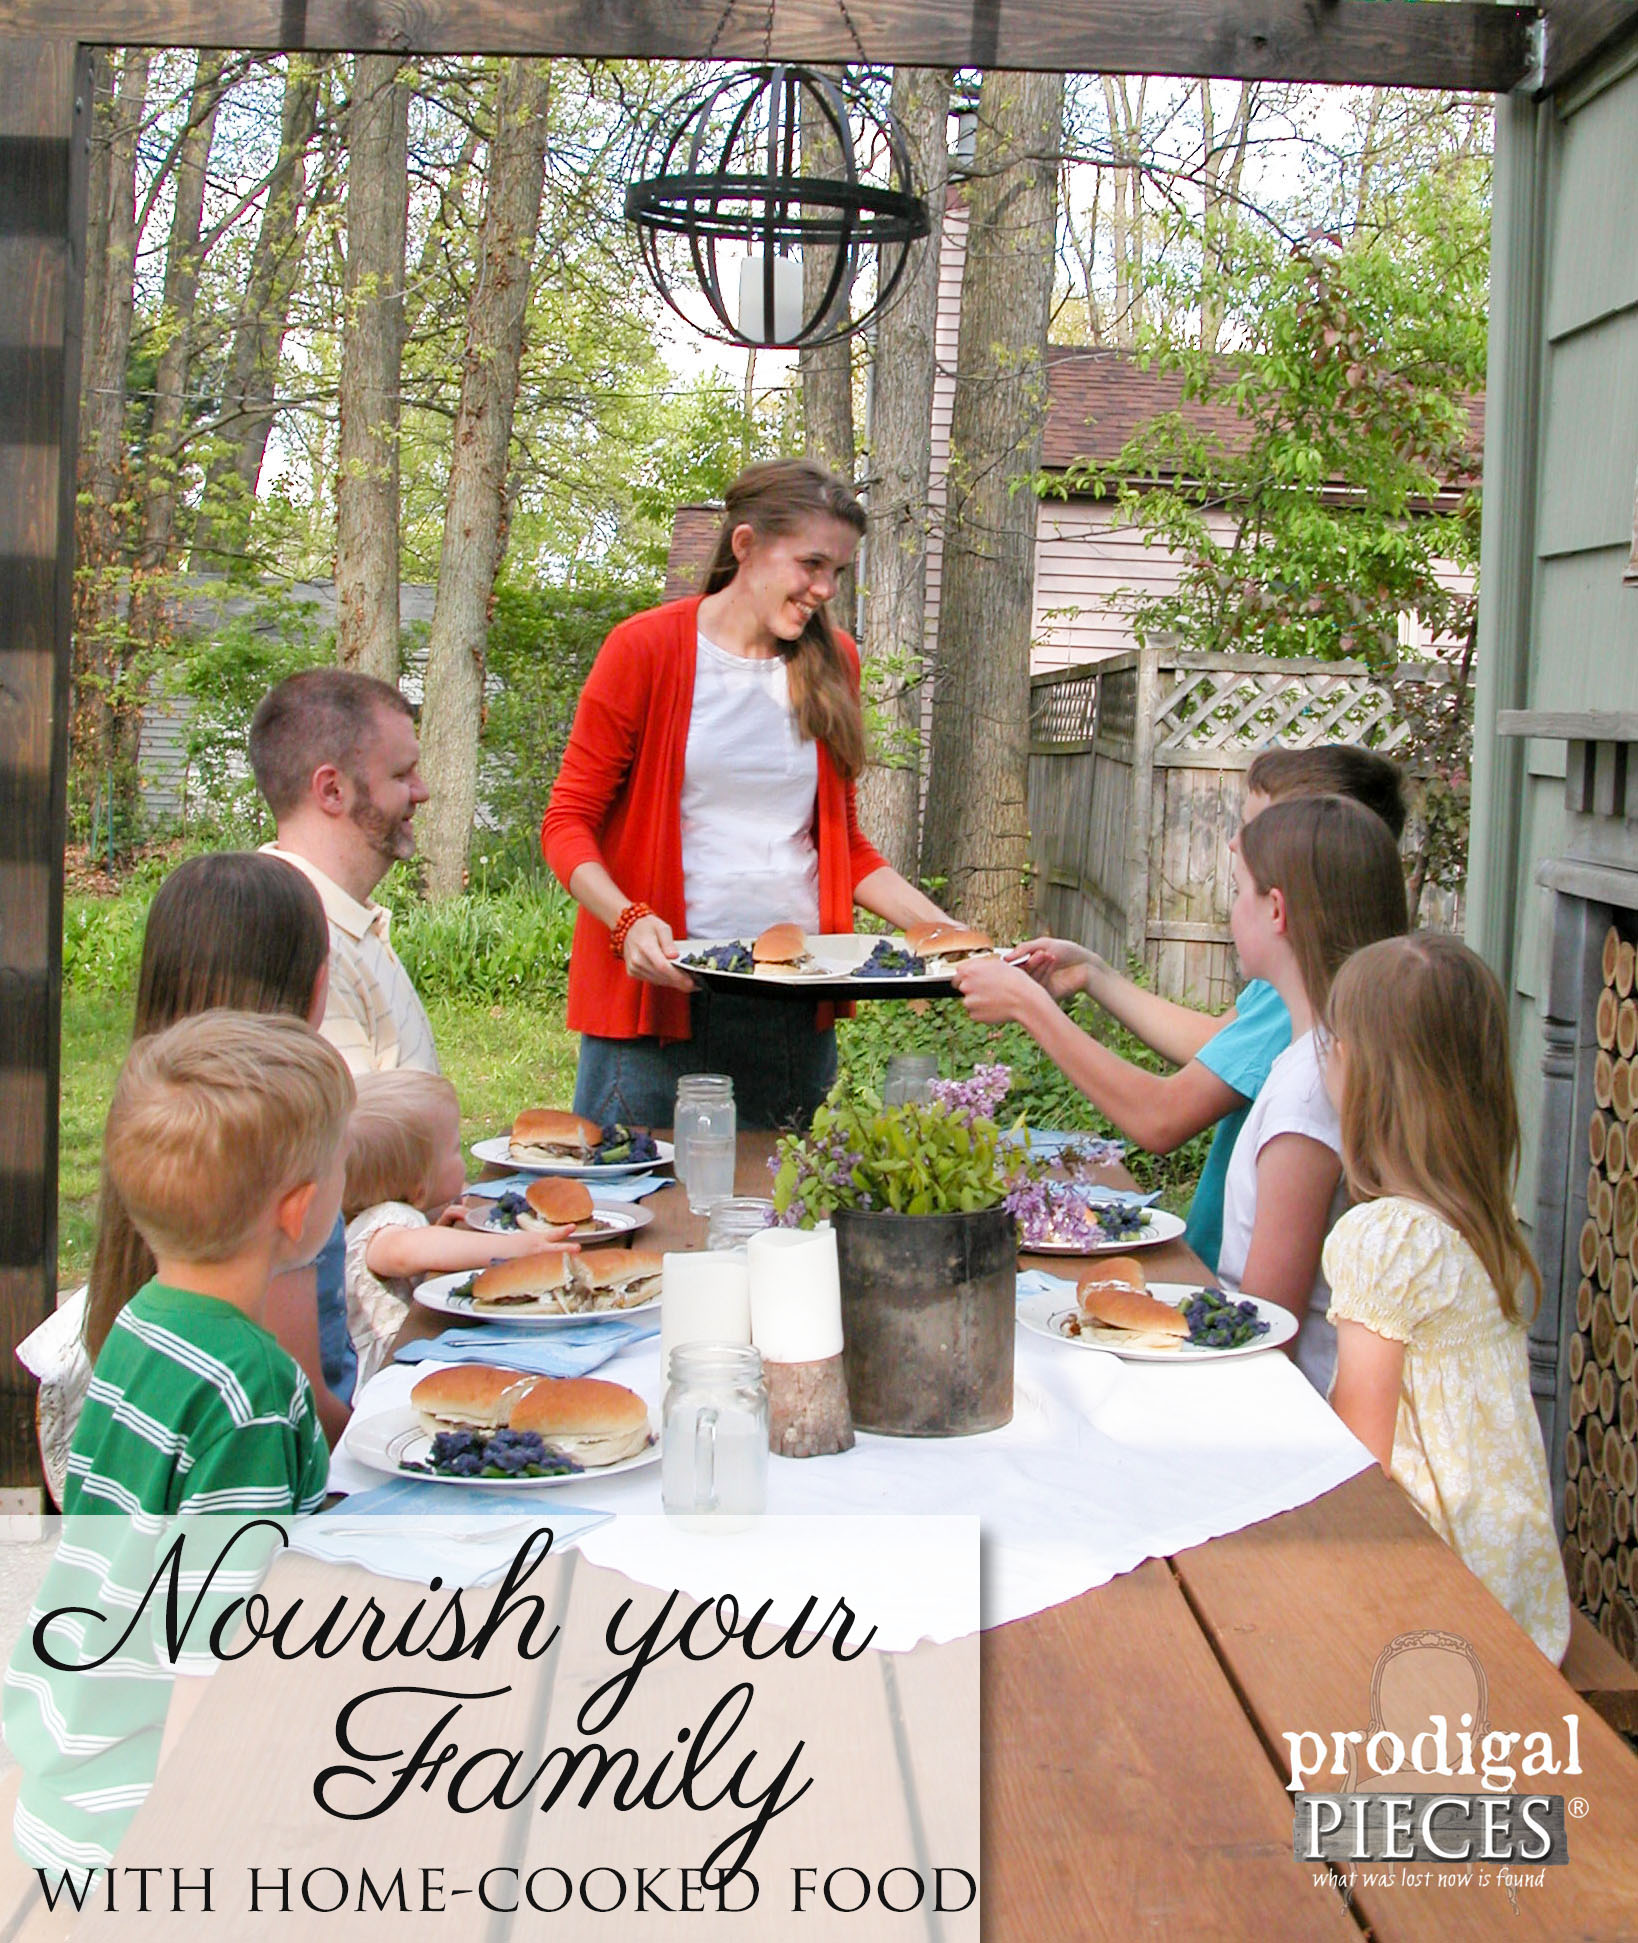 How to Nourish Your Family with Home-Cooked Food by Prodigal Pieces | www.prodigalpieces.com